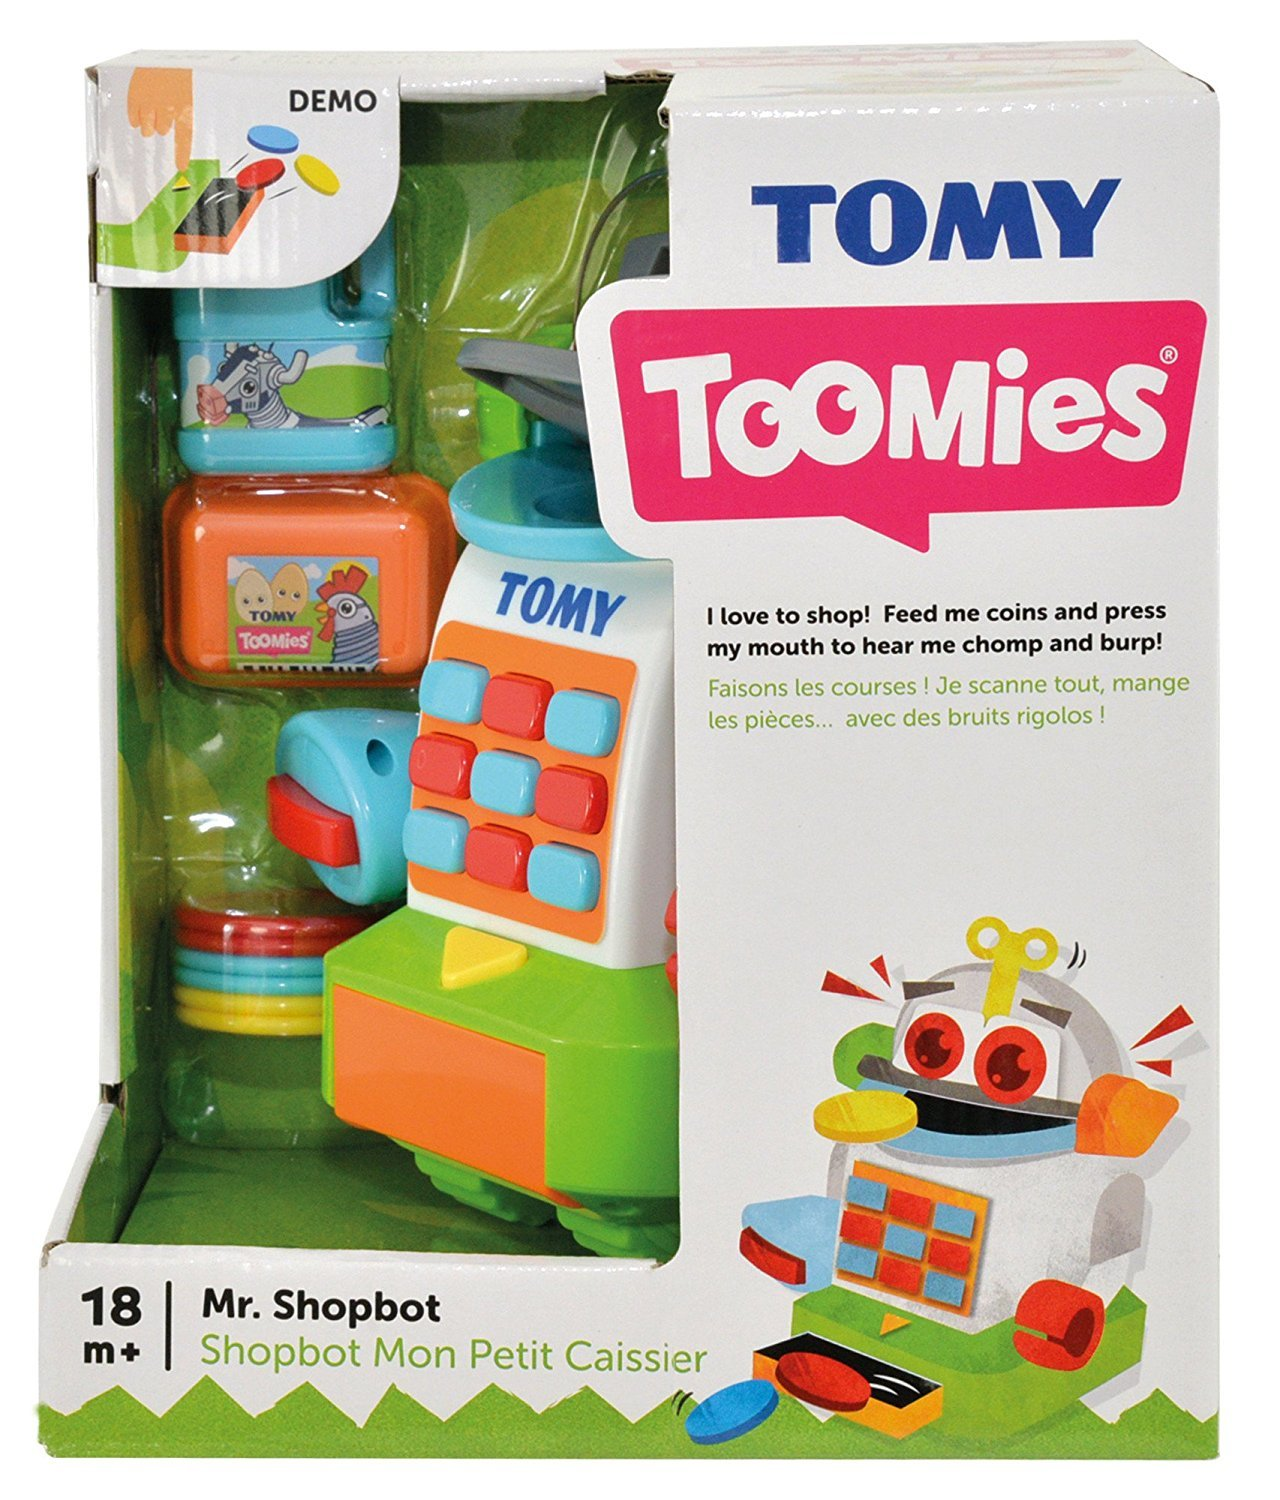 Tomy Toomies: Mr ShopBot - Playset image